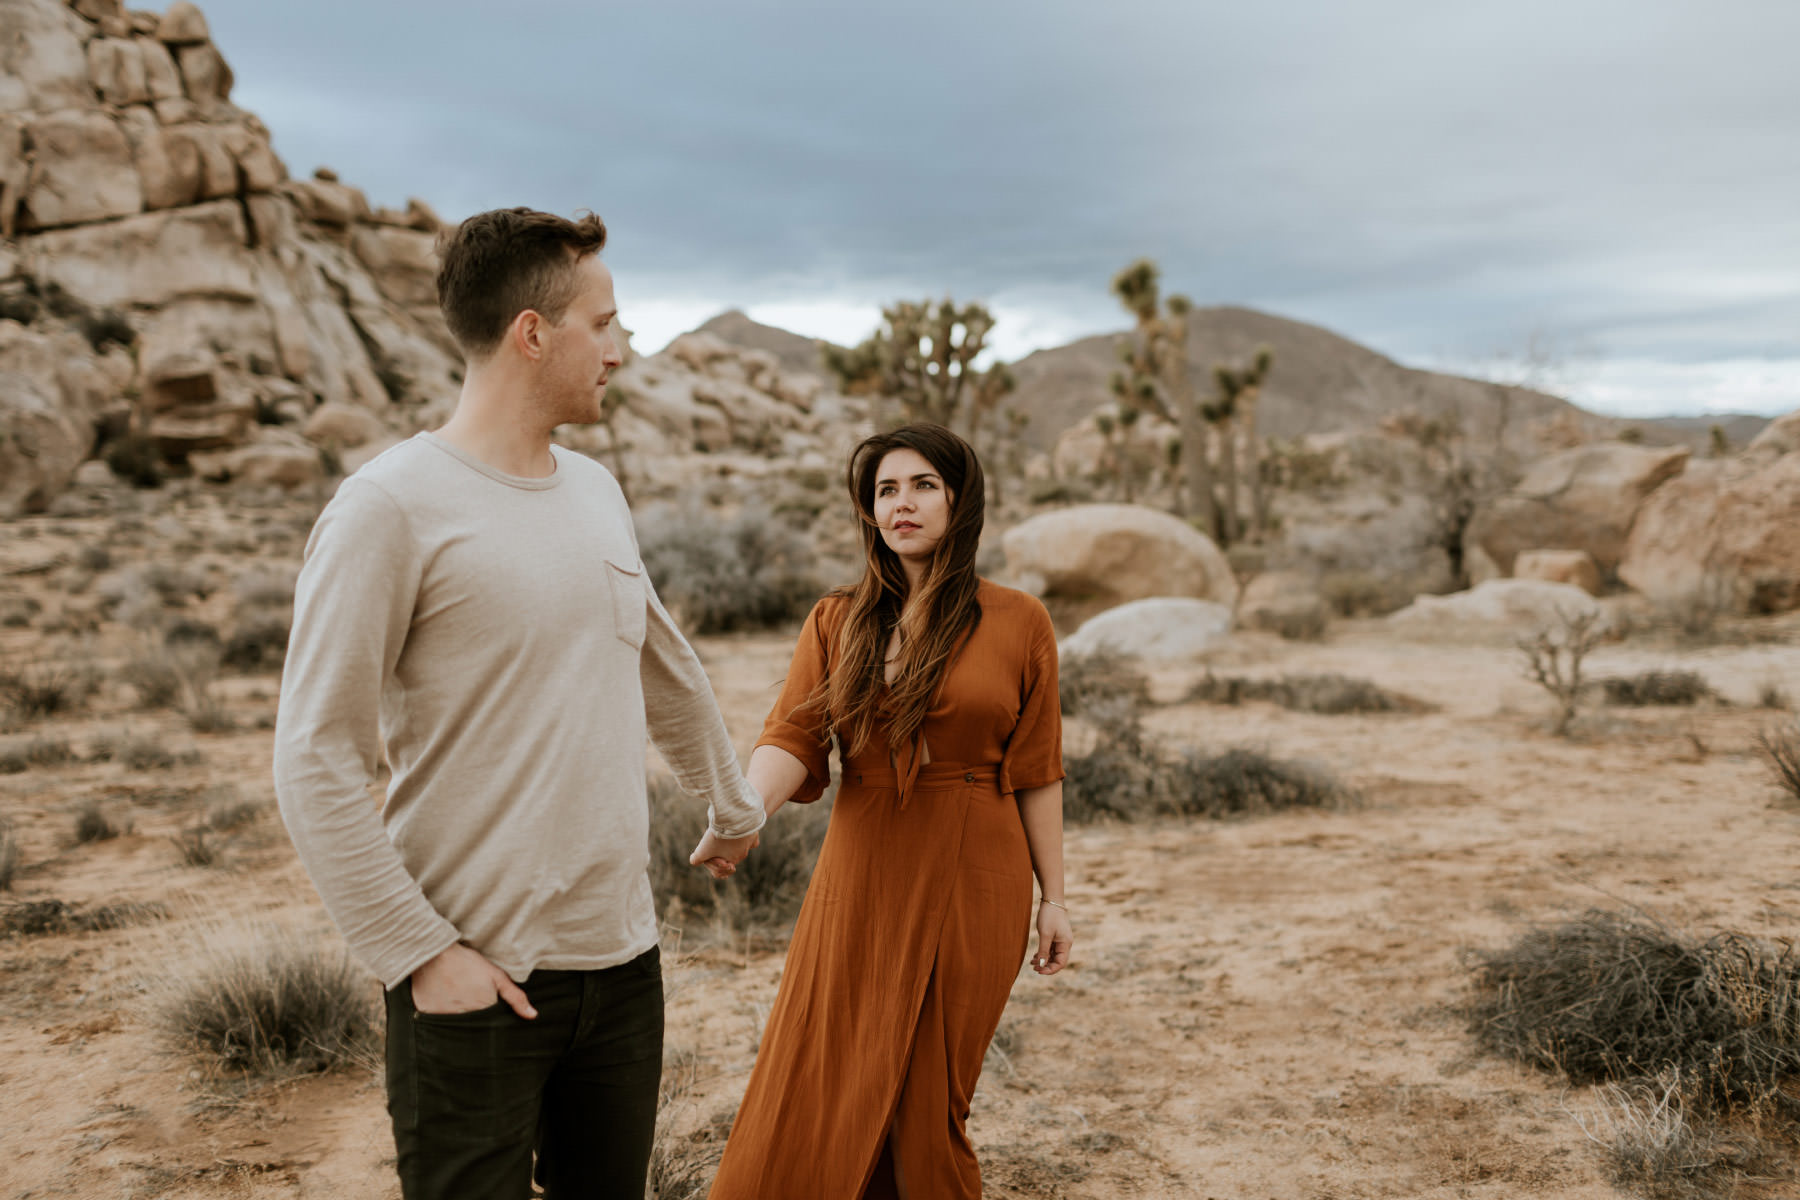 Windy and adventurous engagement session at Joshua Tree